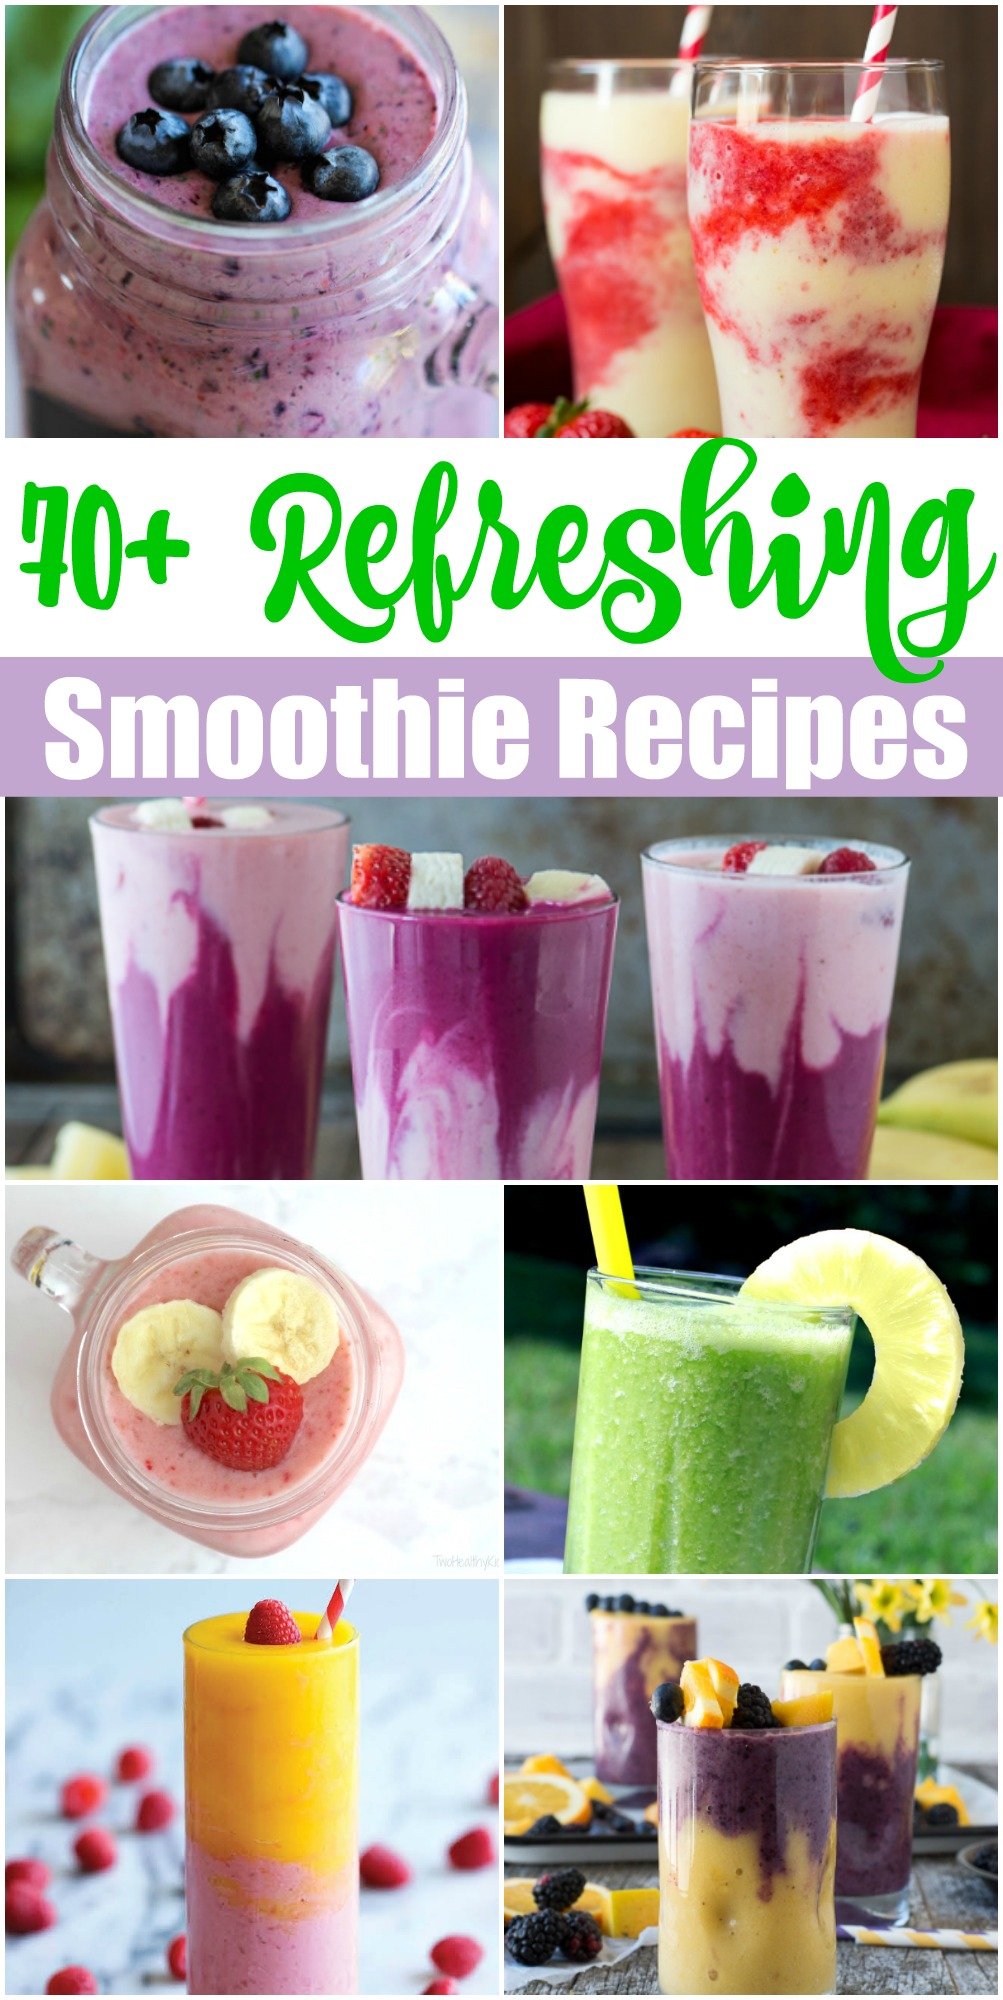 70 refreshing smoothie recipes